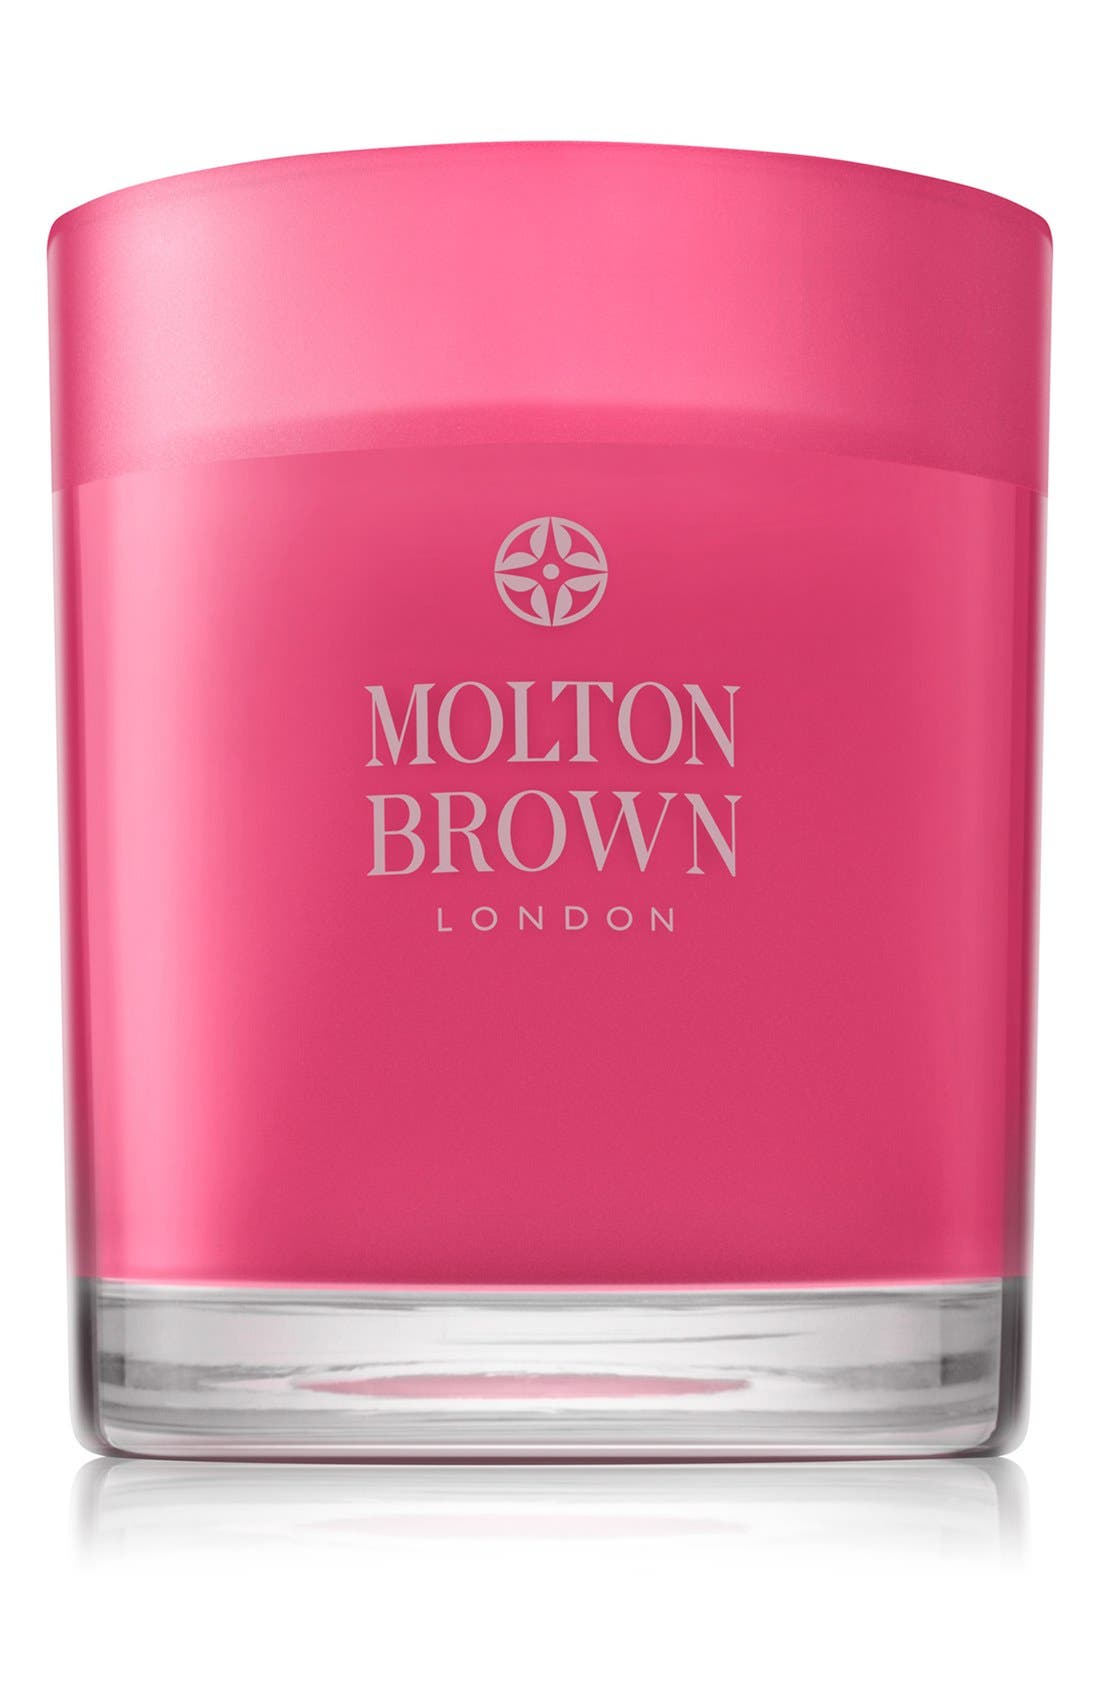 MOLTON BROWN LONDON Single Wick Candle